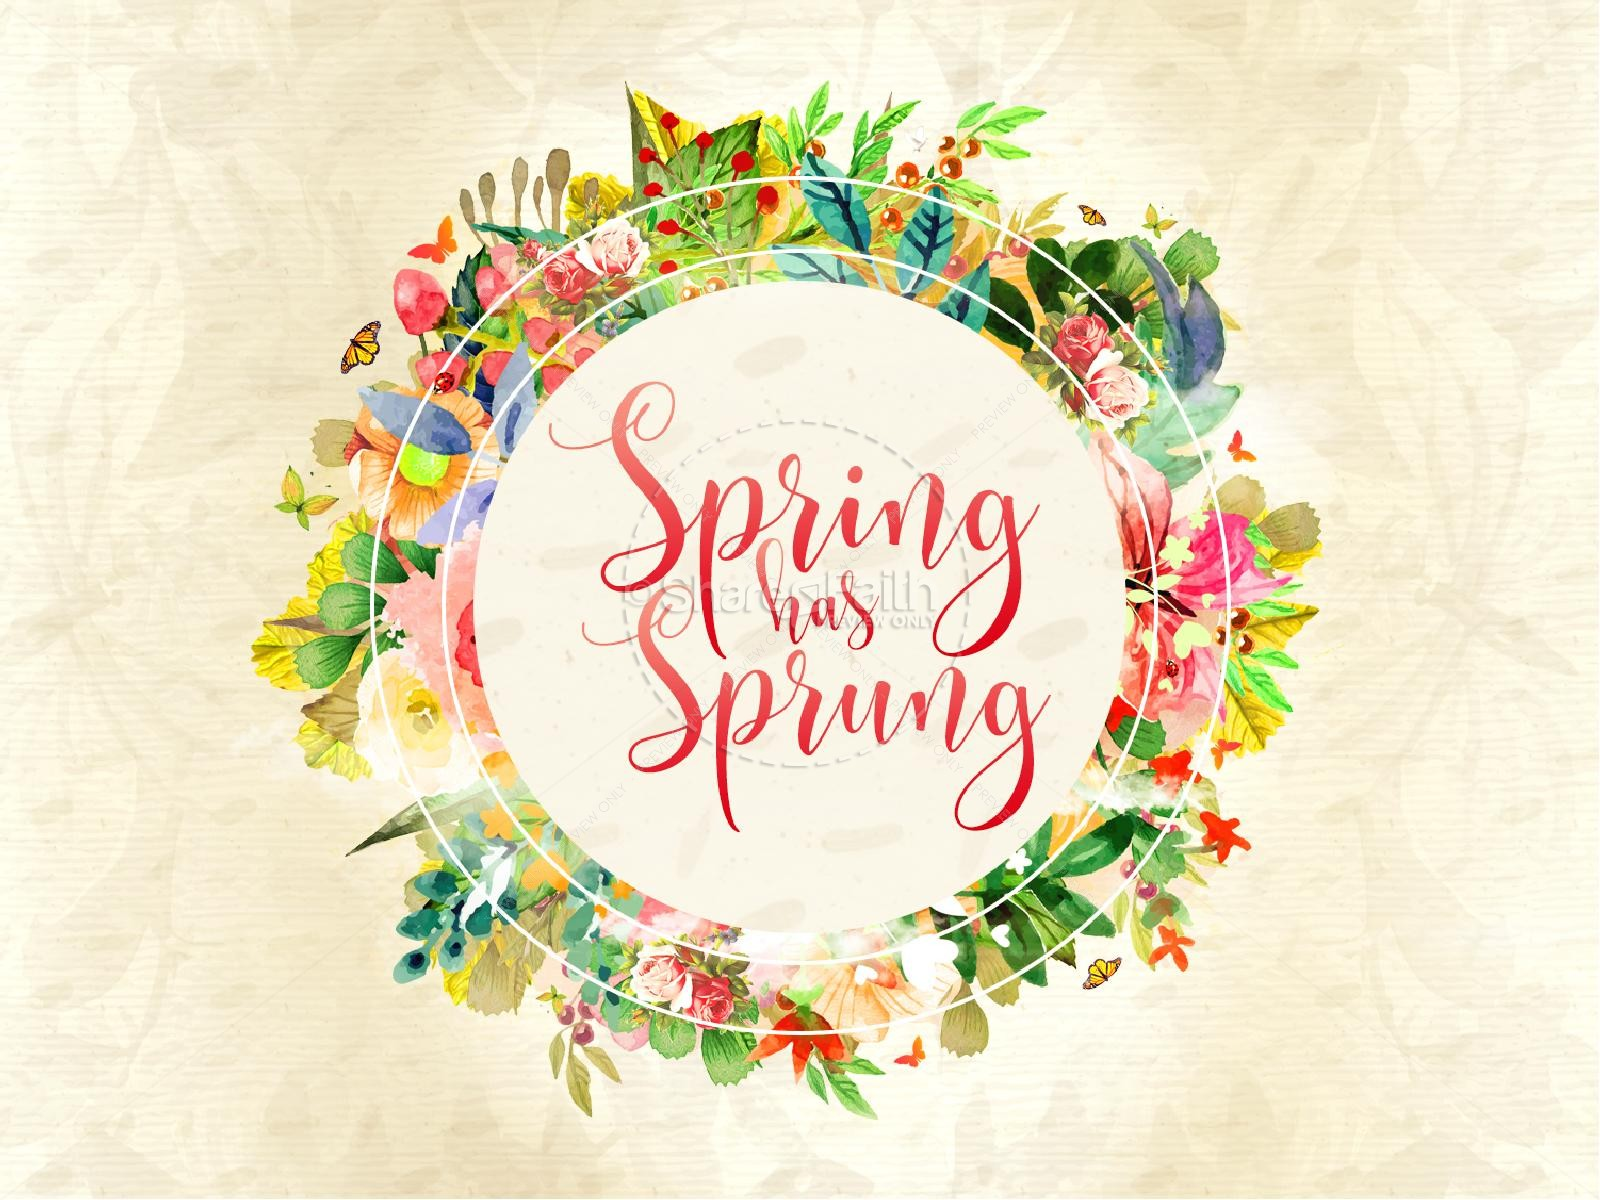 Spring Has Sprung Church Motion Graphic.